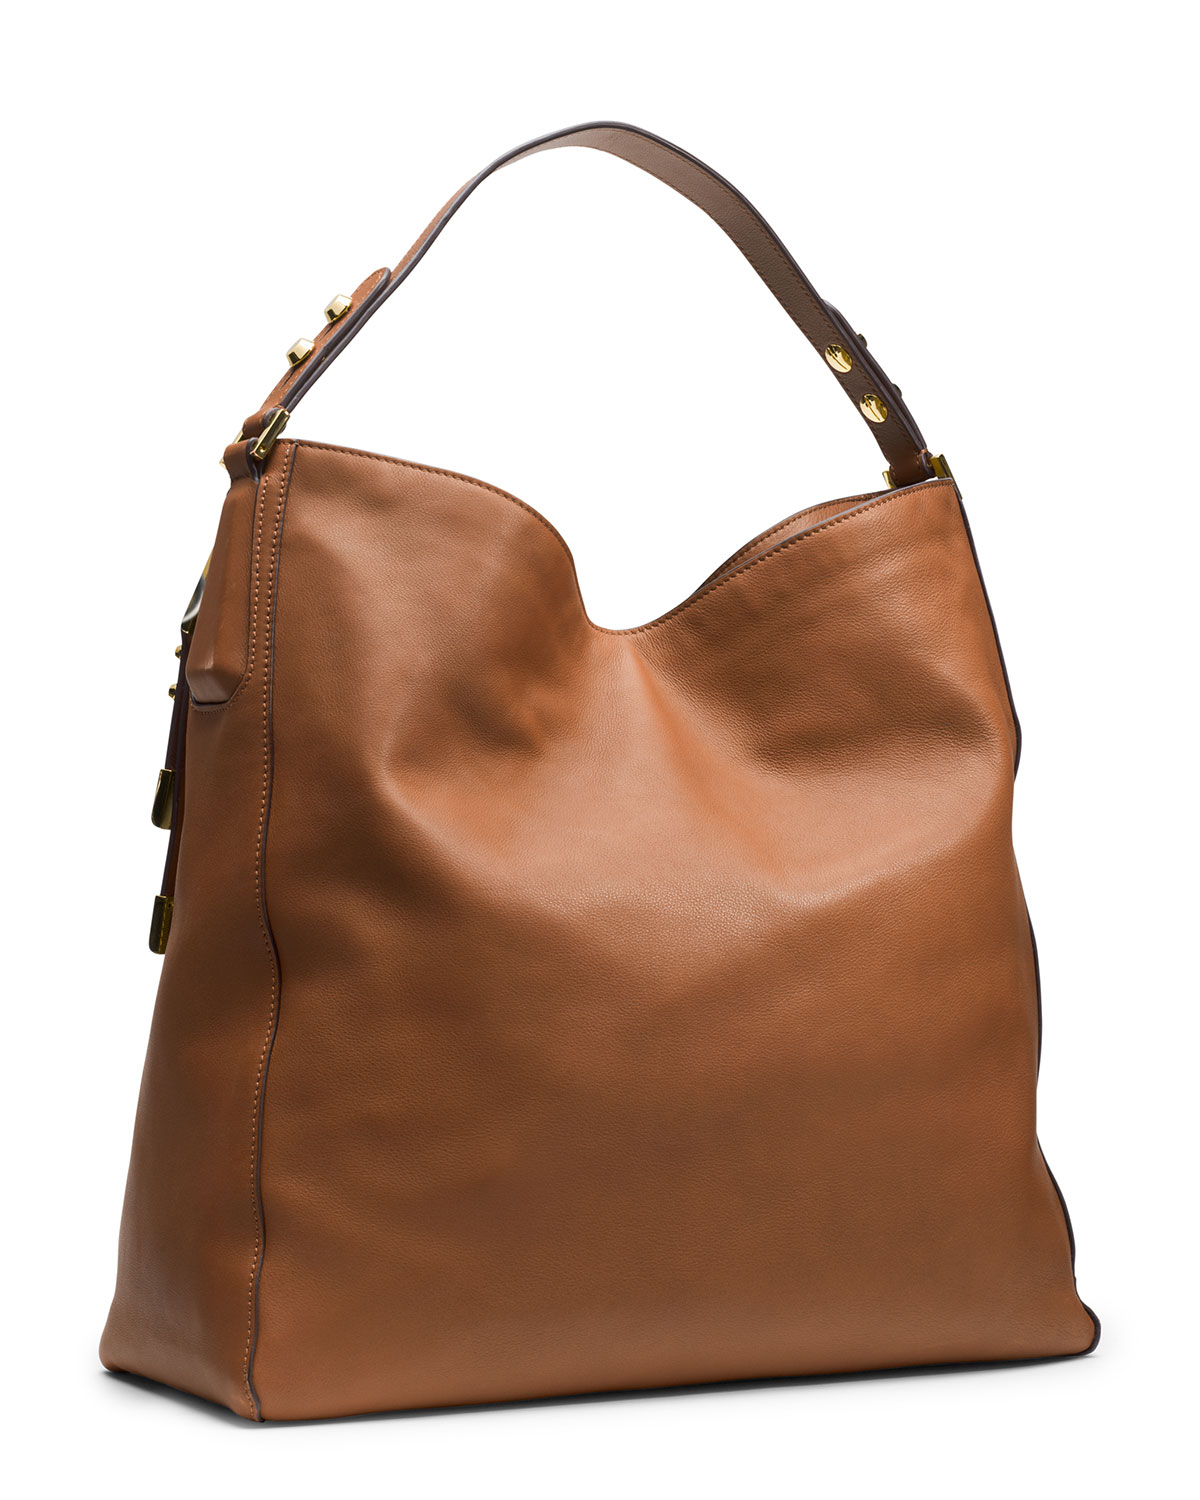 62f1bb577 Gallery. Previously sold at: Neiman Marcus · Women's Michael By Michael  Kors Miranda